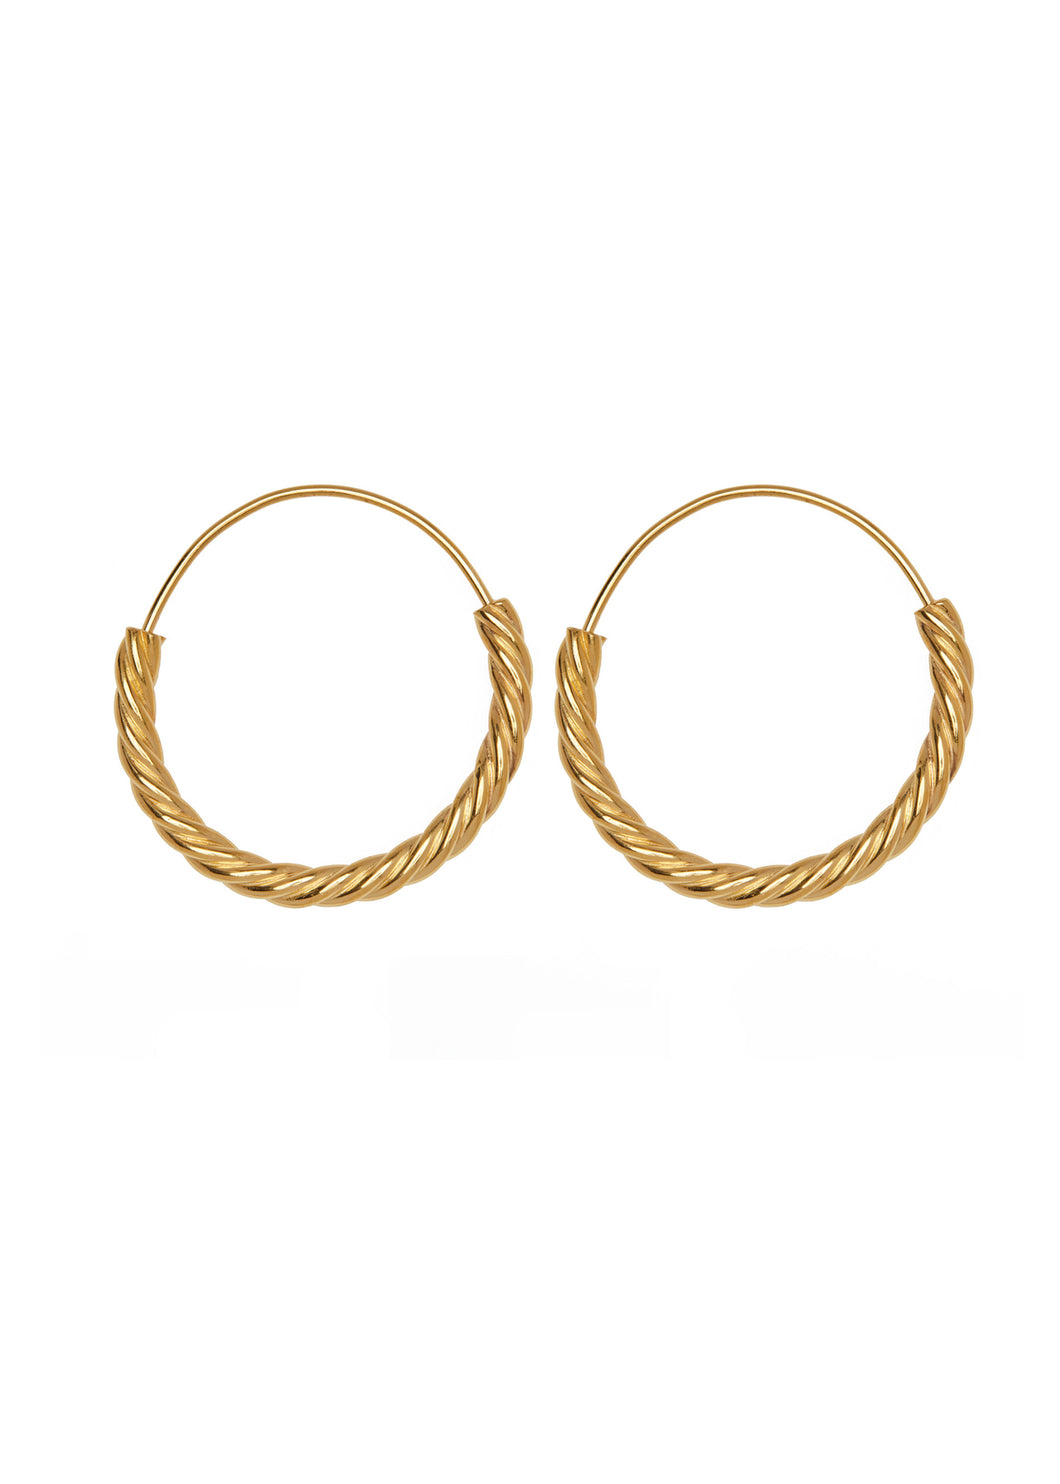 Oorbellen - Twisted hoop - Gold plated